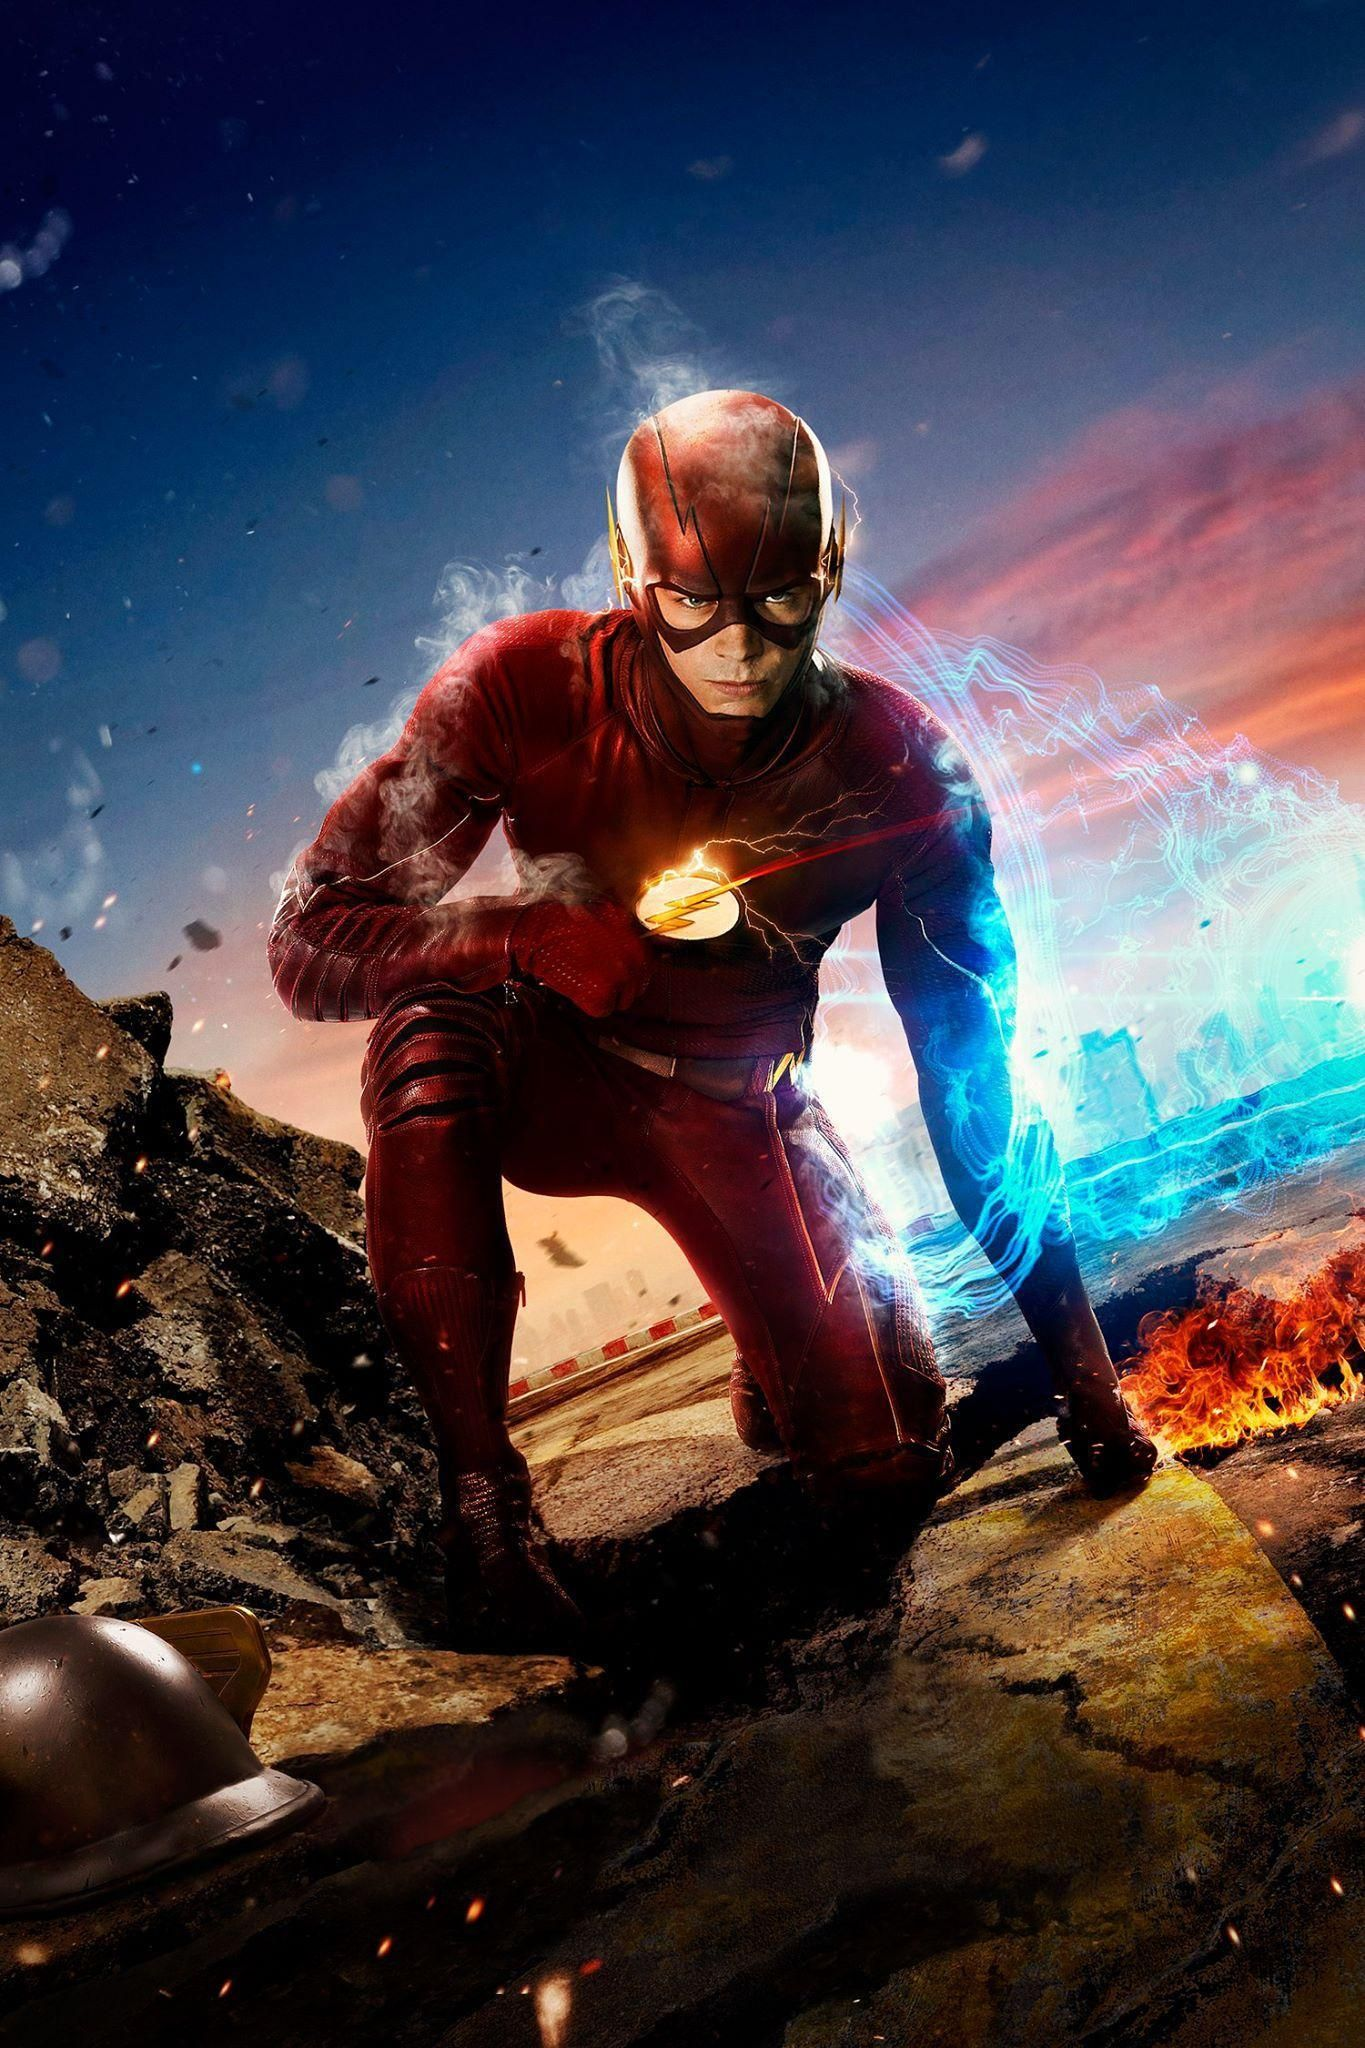 The Flash Hd Wallpaper For Iphone 6 Flash Wallpaper The Flash Flash Marvel Flash phone wallpaper hd